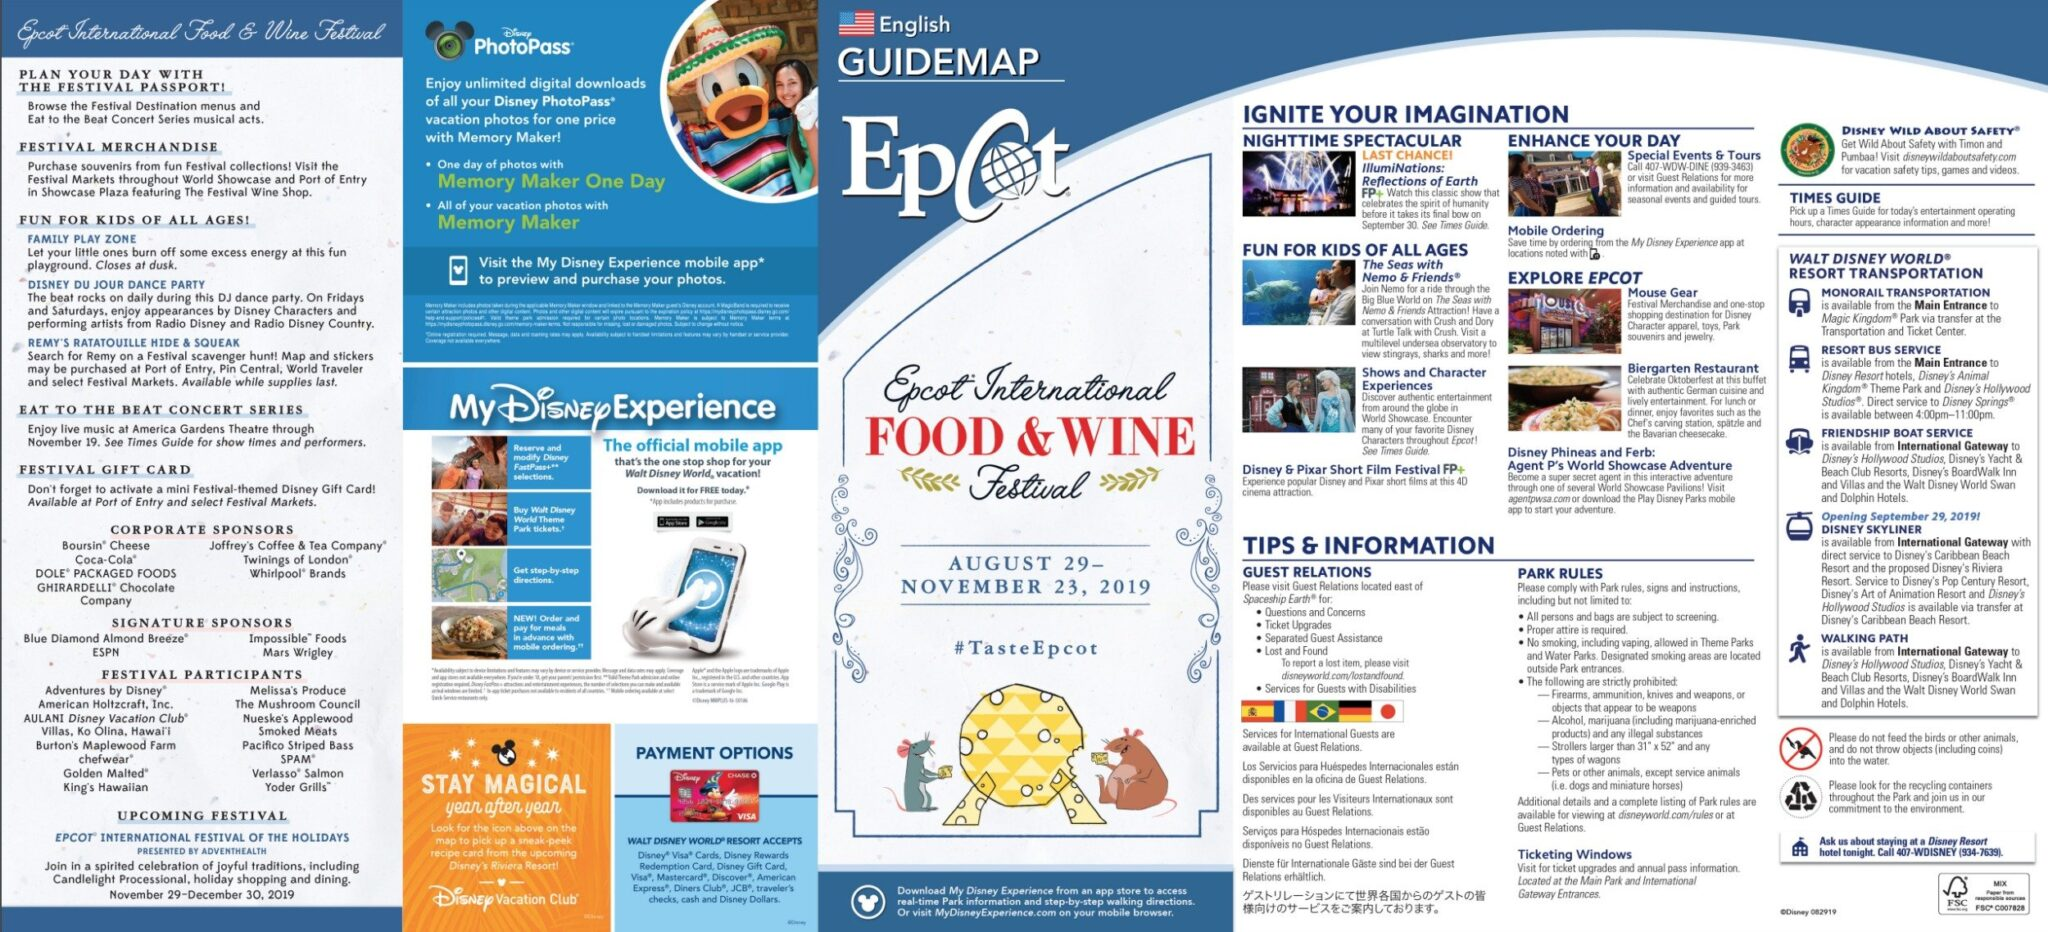 epcot-food-and-wine-festival-map